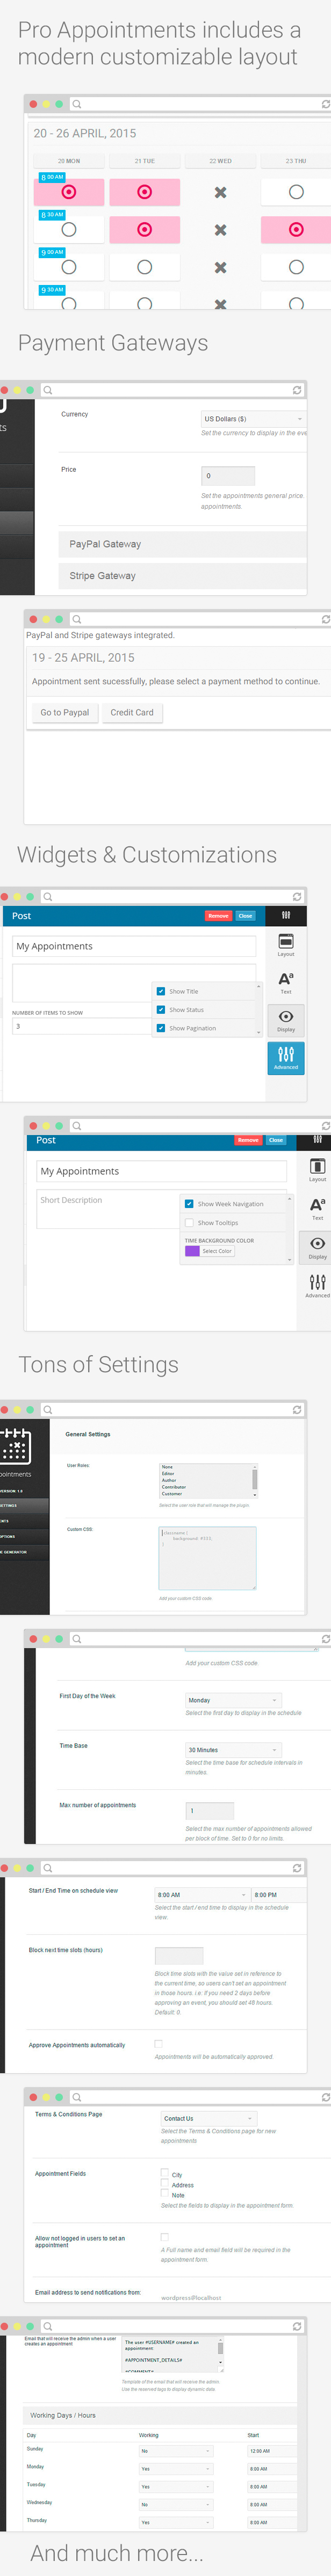 Wordpress Pro Appointments - 2